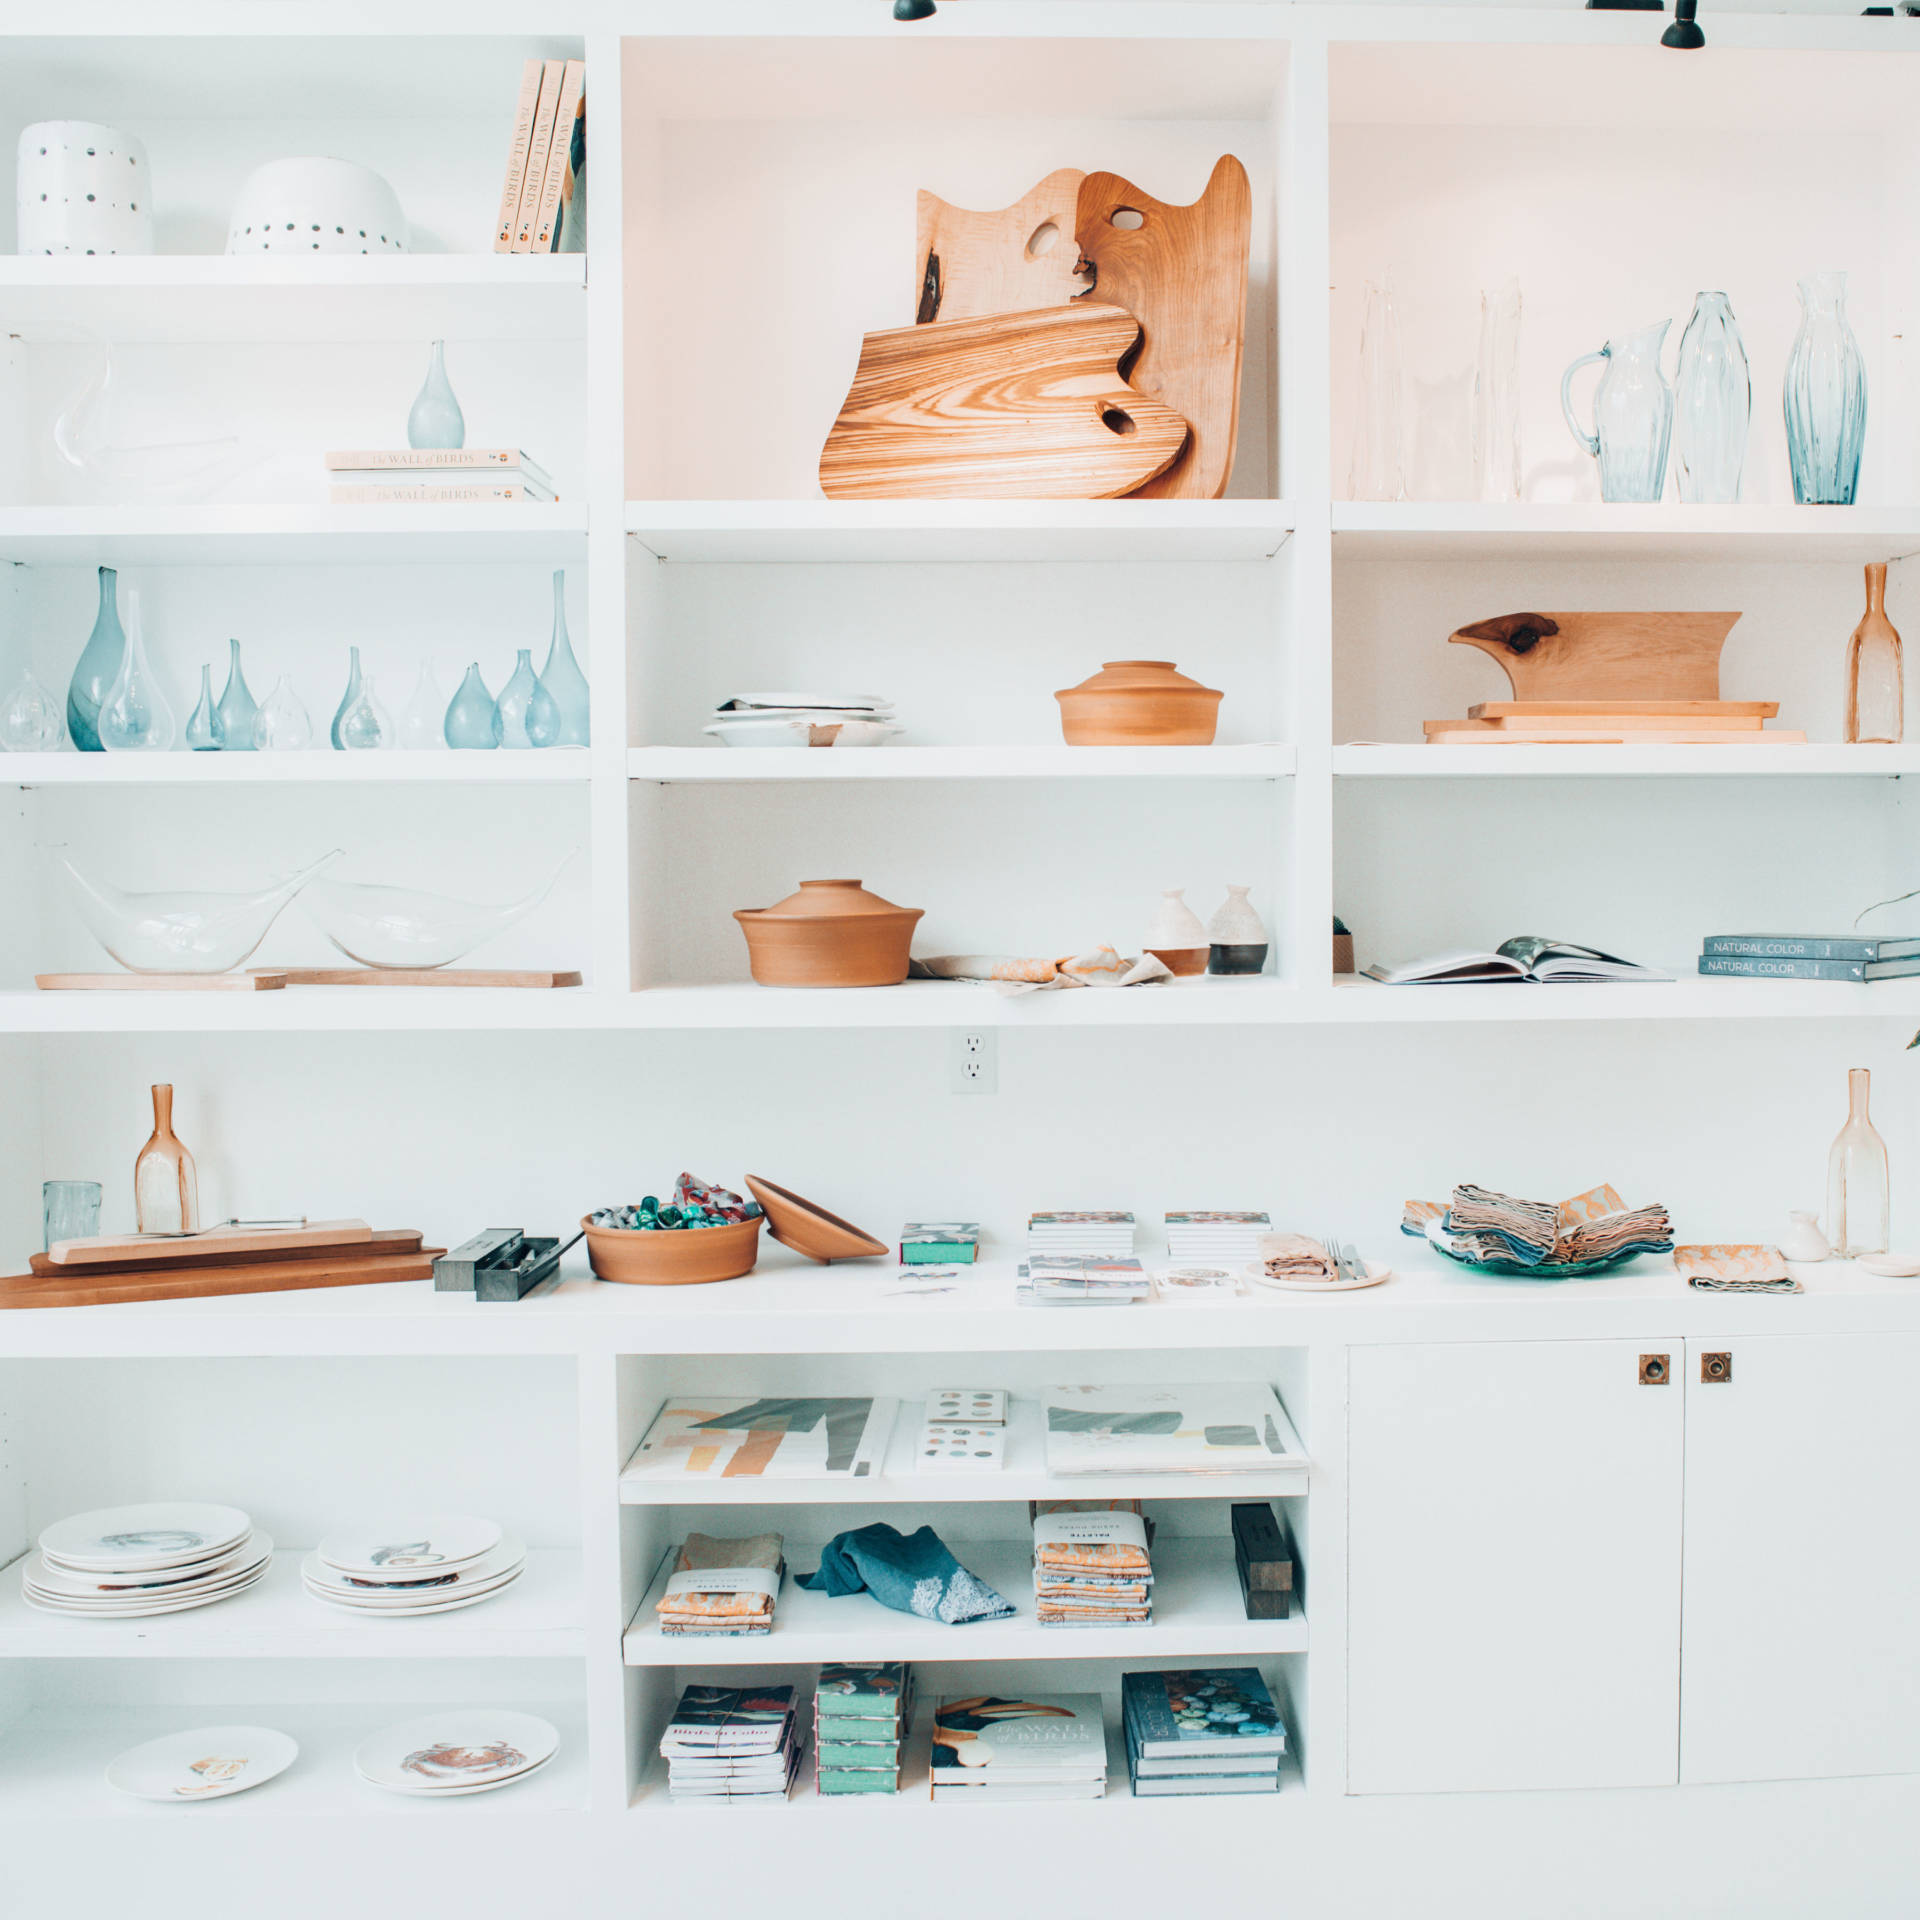 At Palette, there is a connected shop where you can buy different commissioned Bay Area pieces.